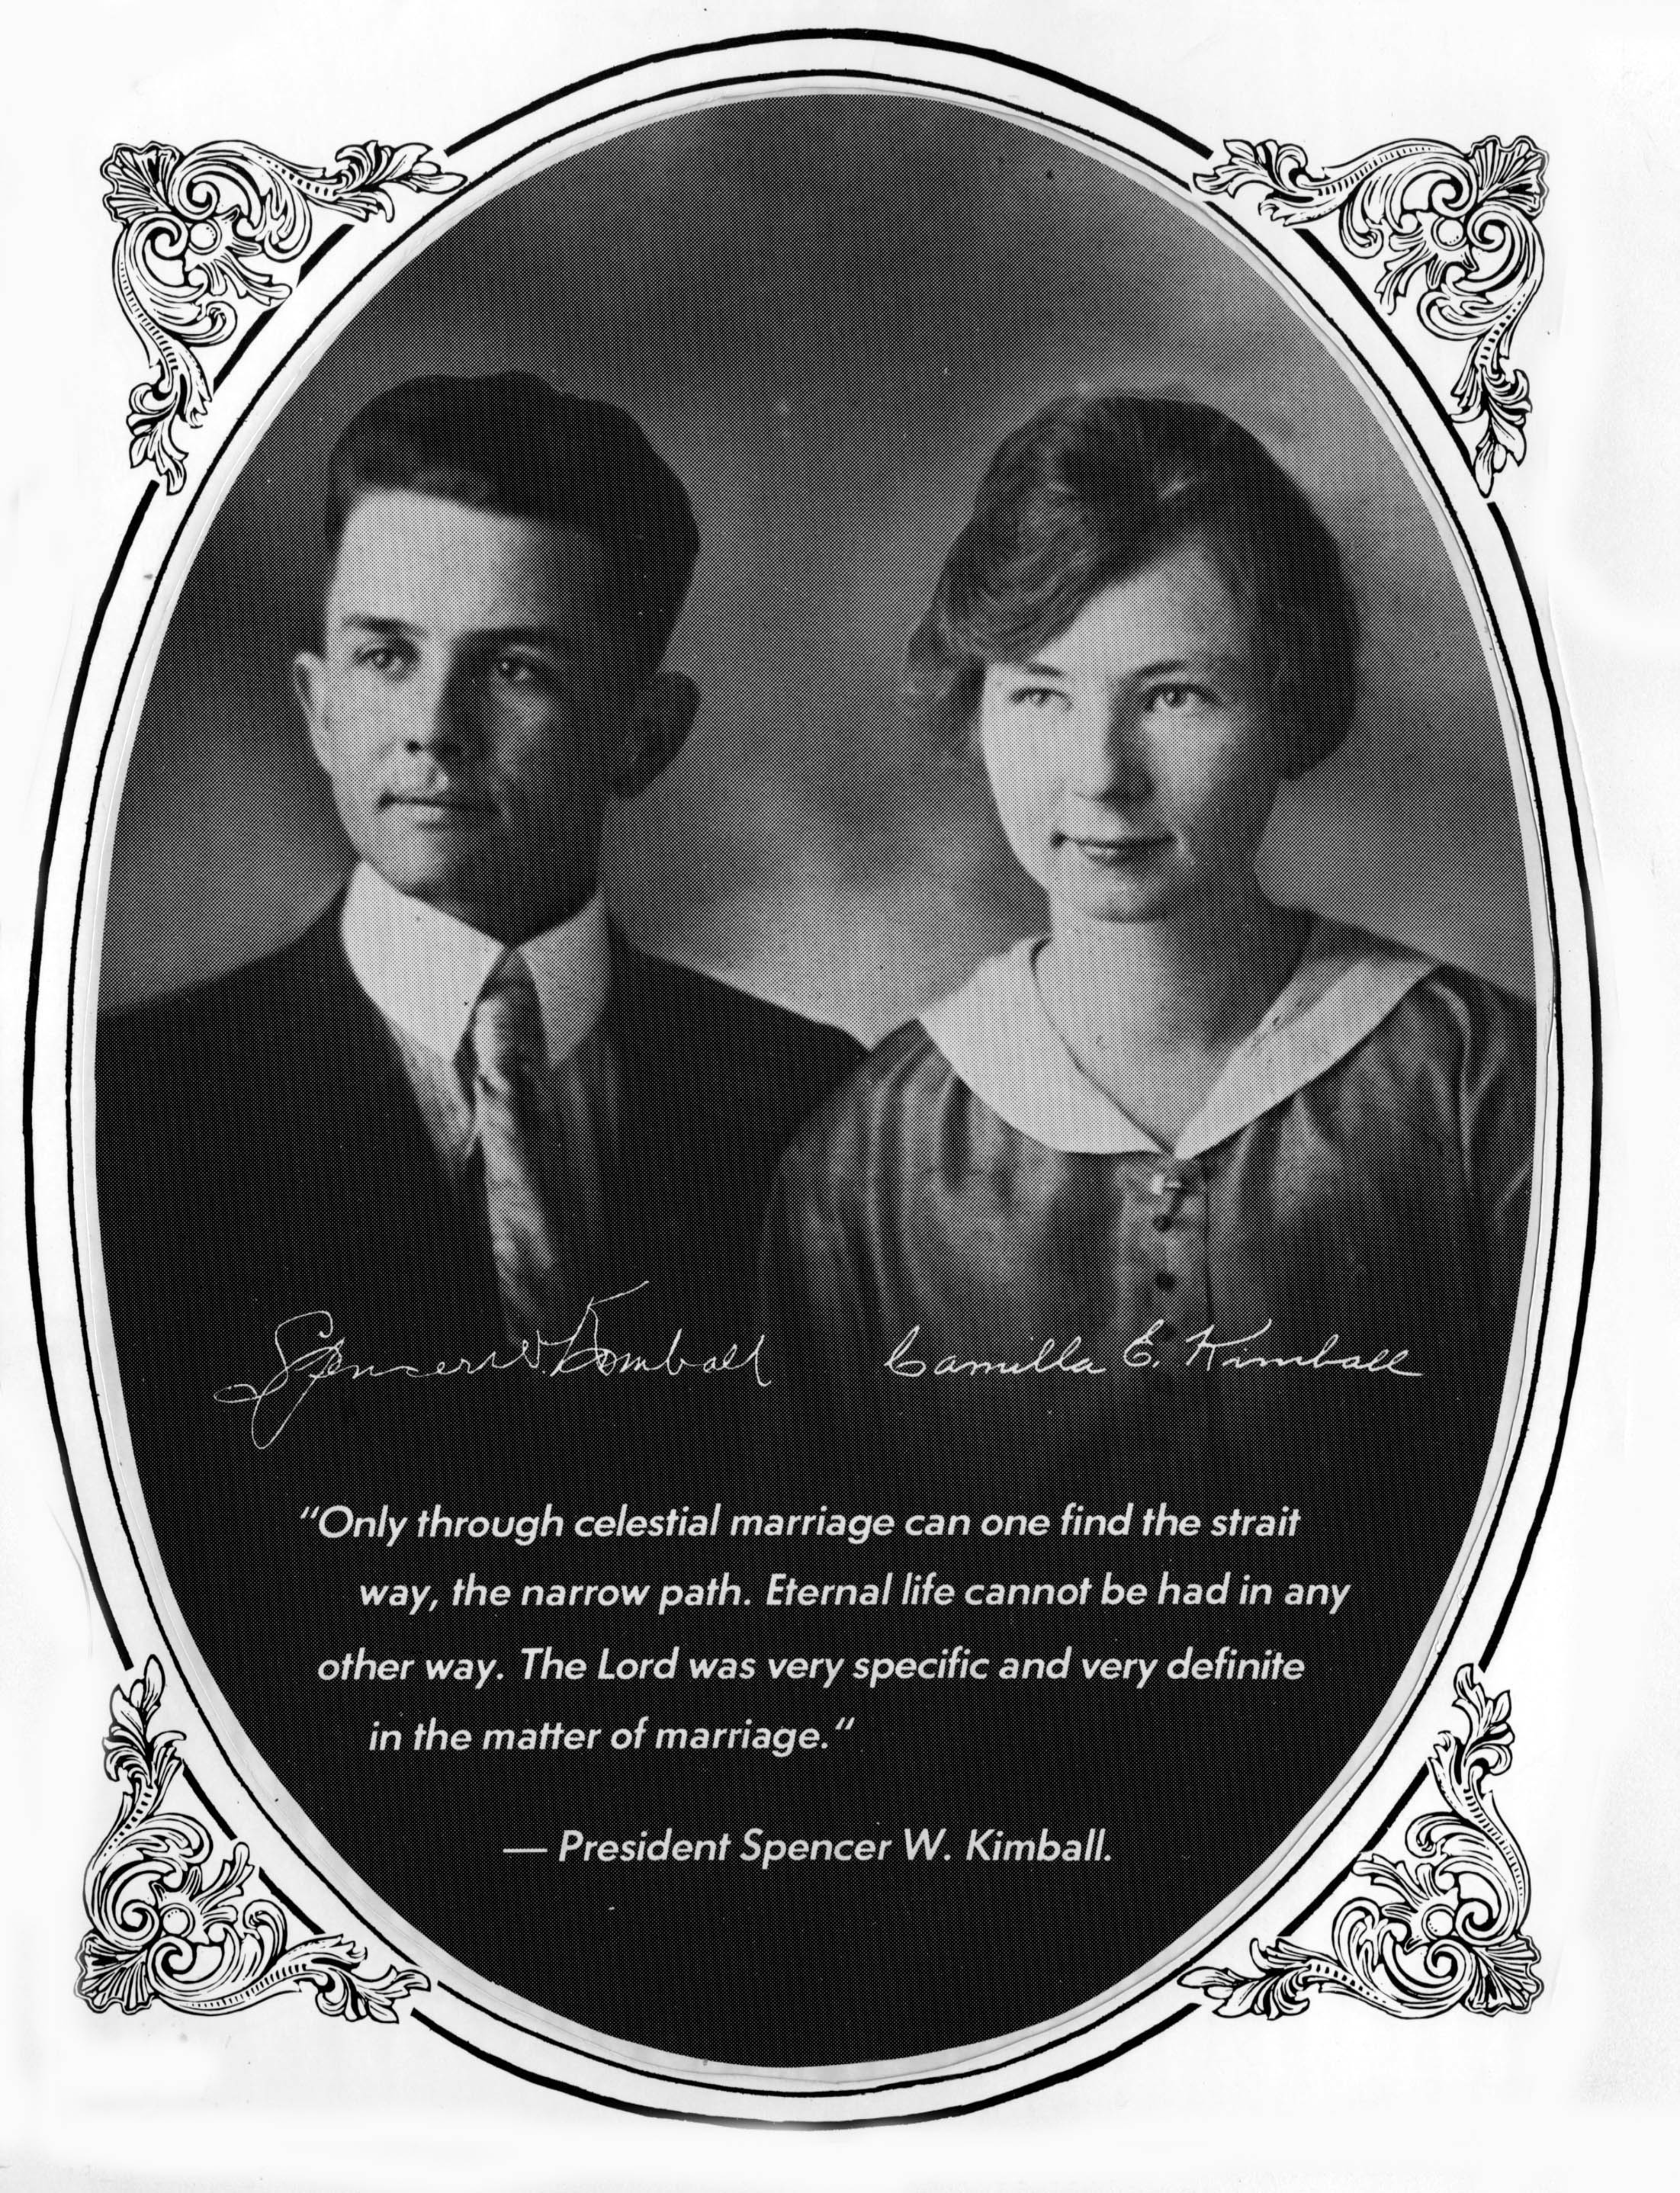 A wedding photo of Spencer W. Kimball and Camilla Eyring.